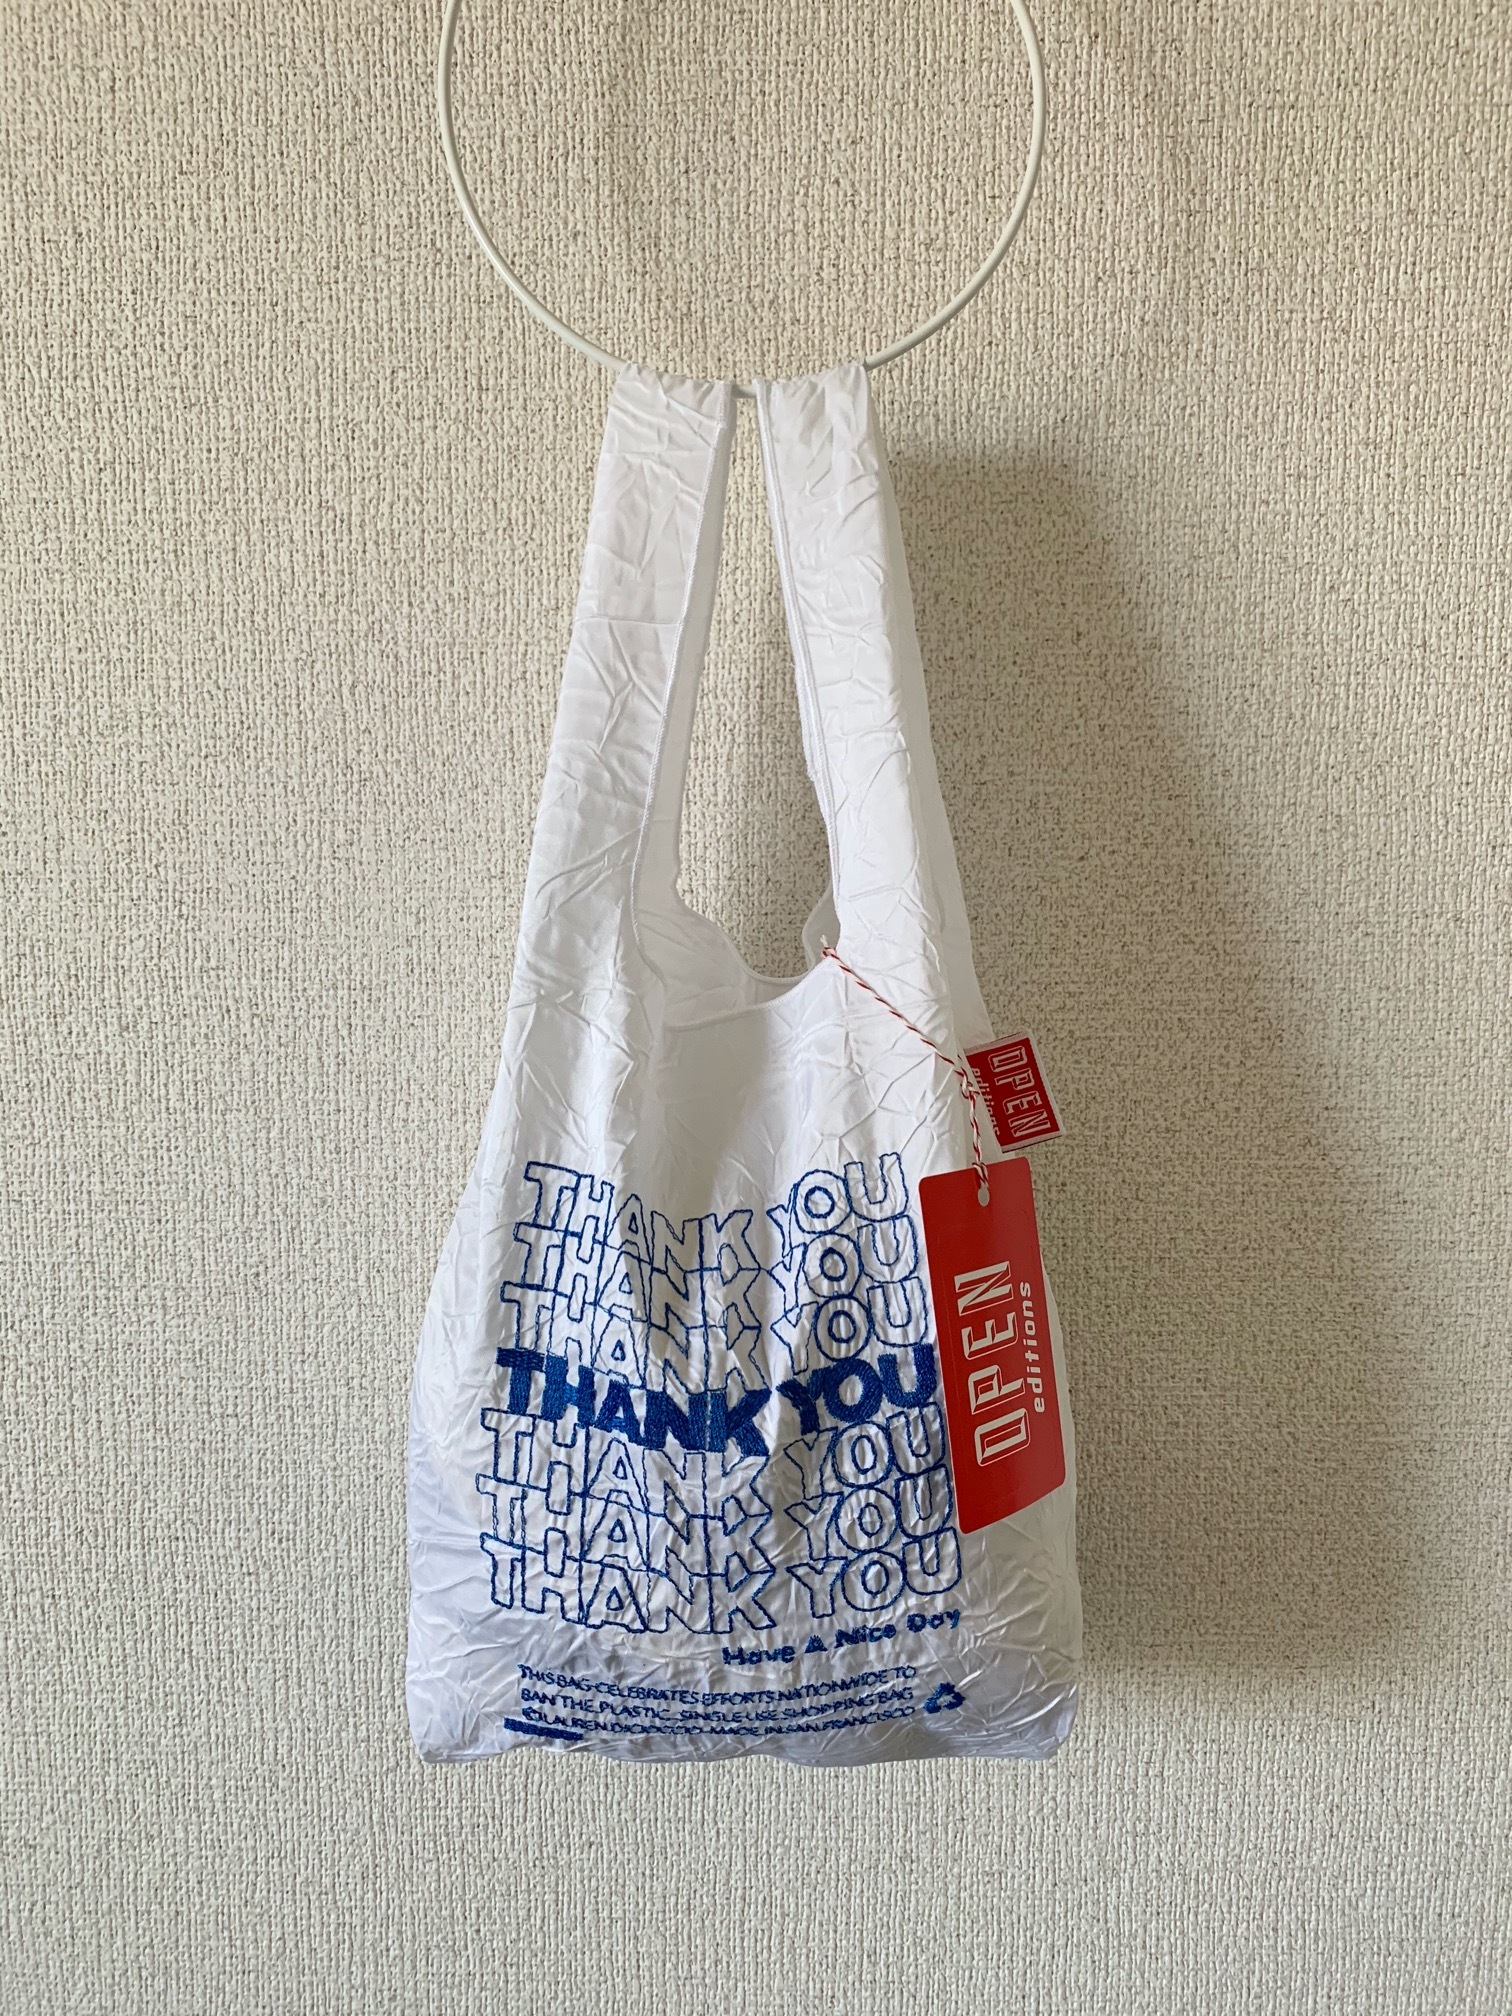 【OPEN EDITIONS】THANK YOU MINI エコバッグ/ THANK YOU Blue